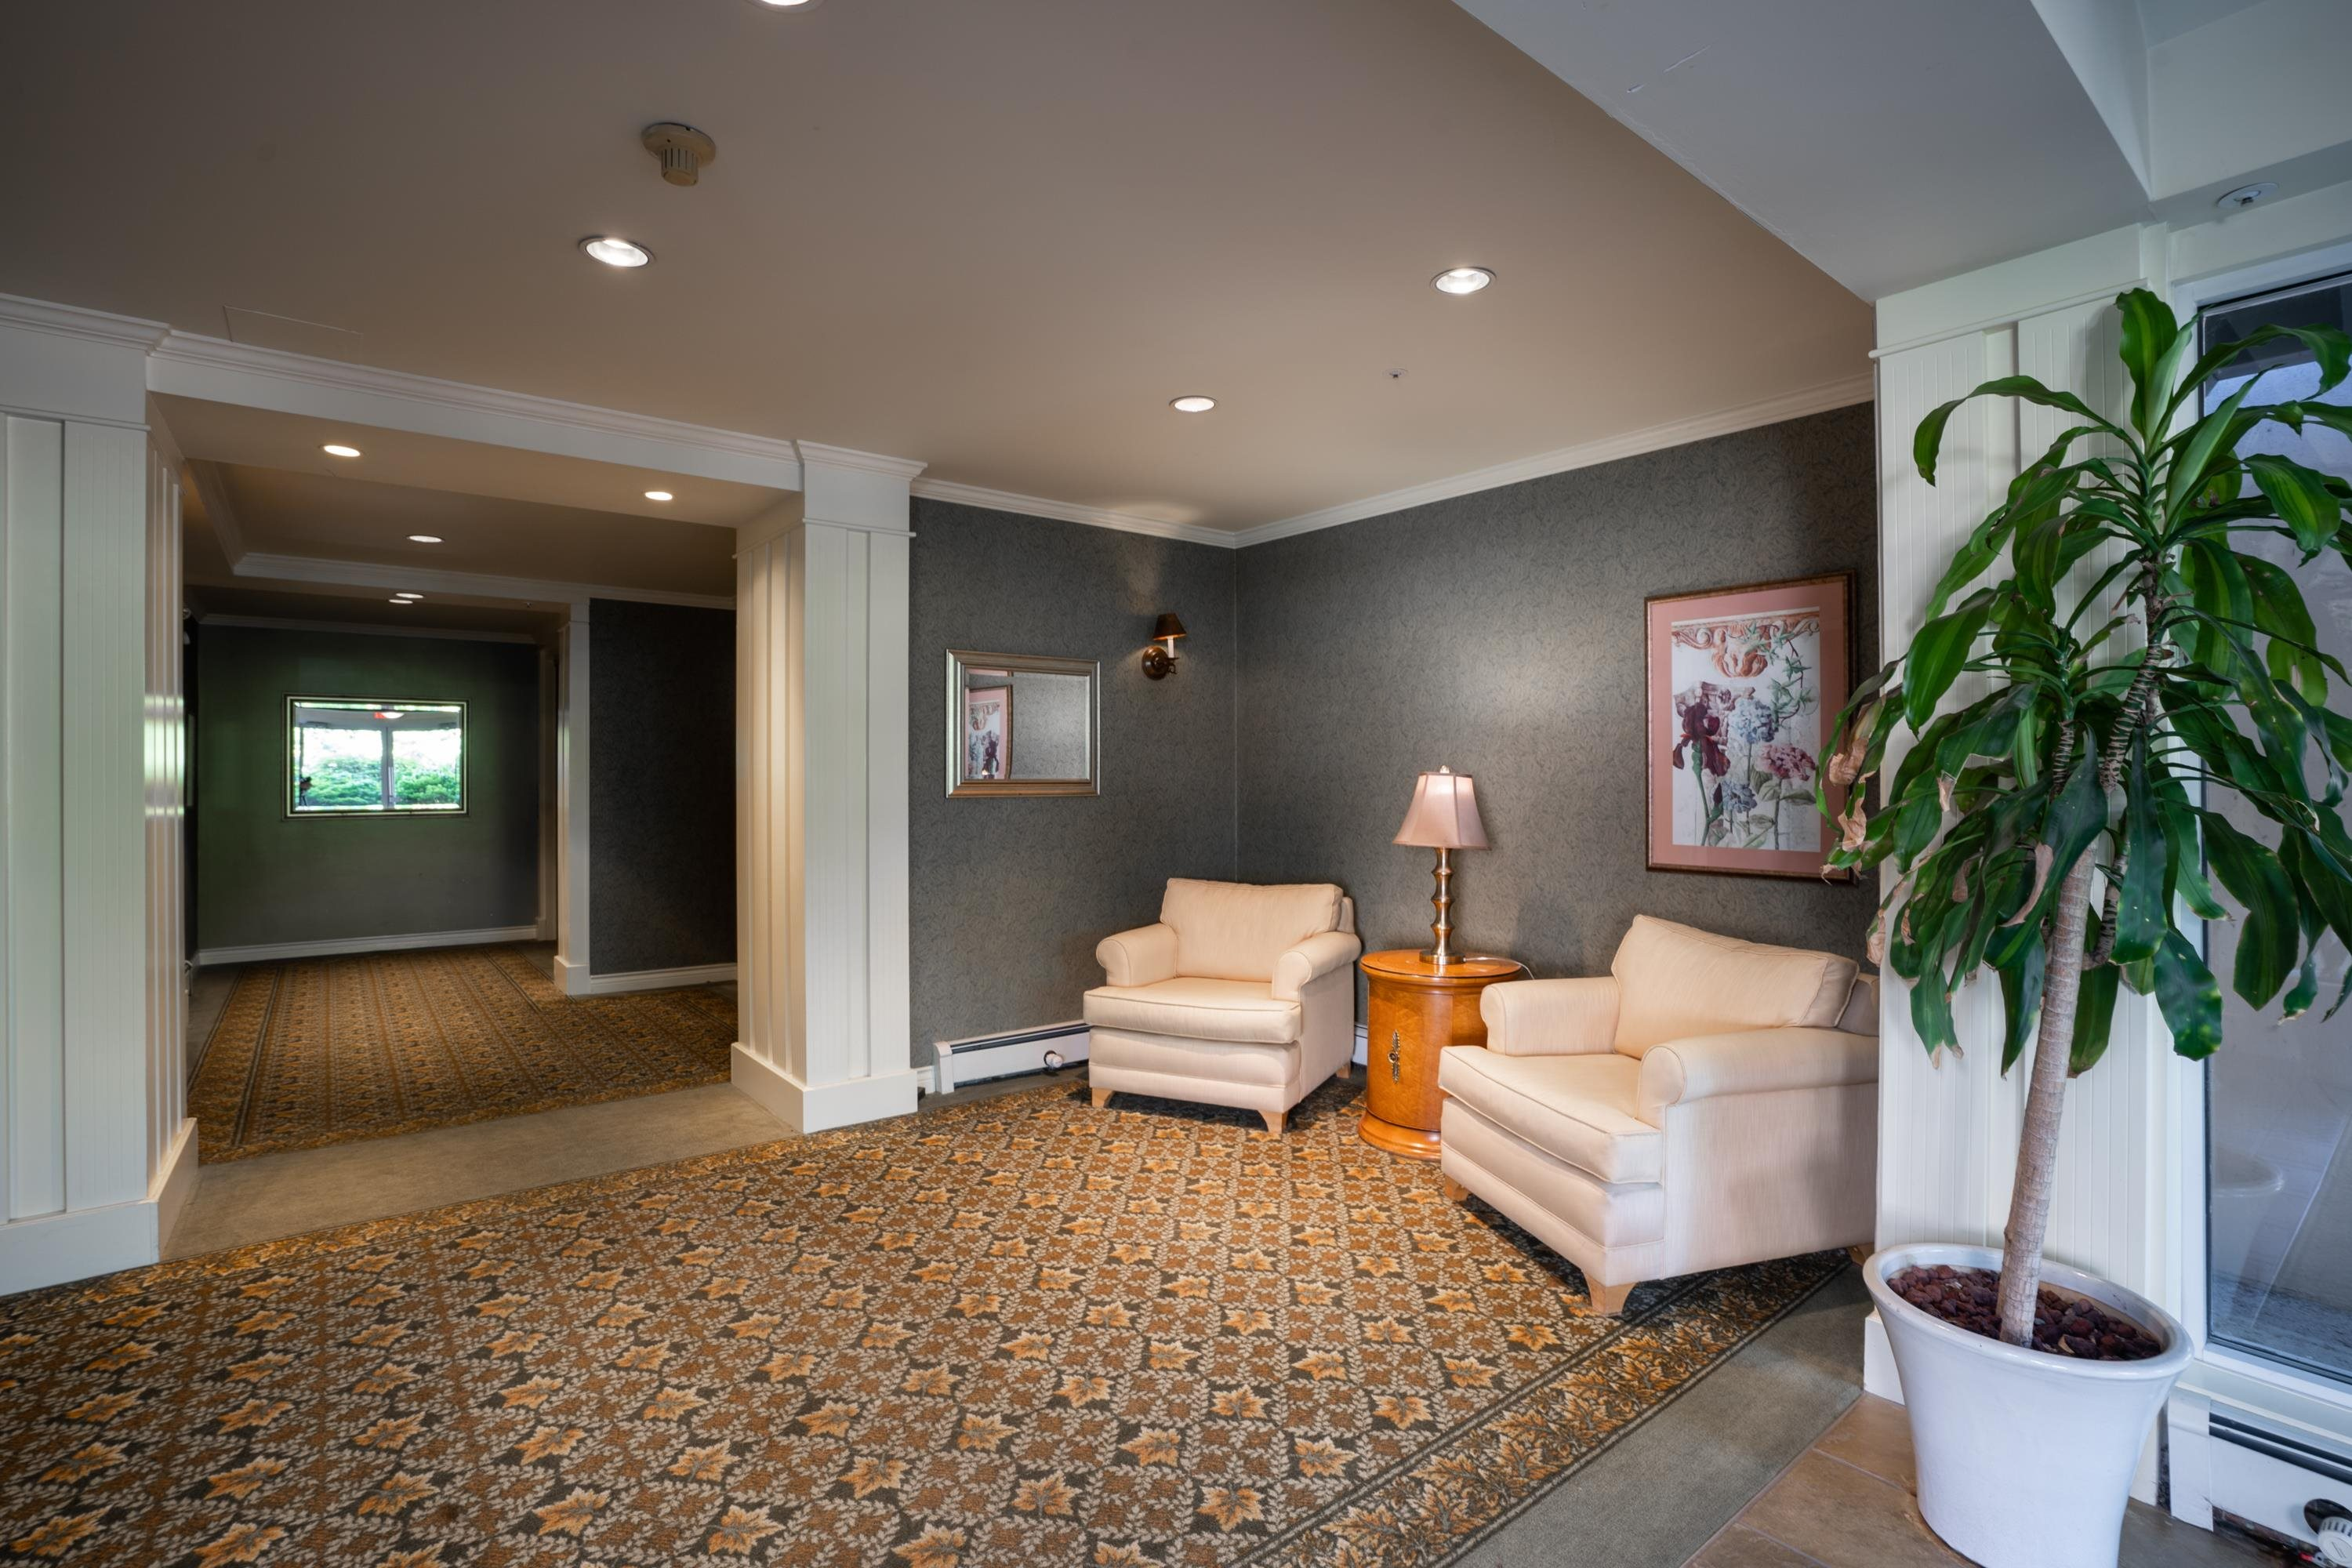 Listing image of 107 1140 STRATHAVEN DRIVE